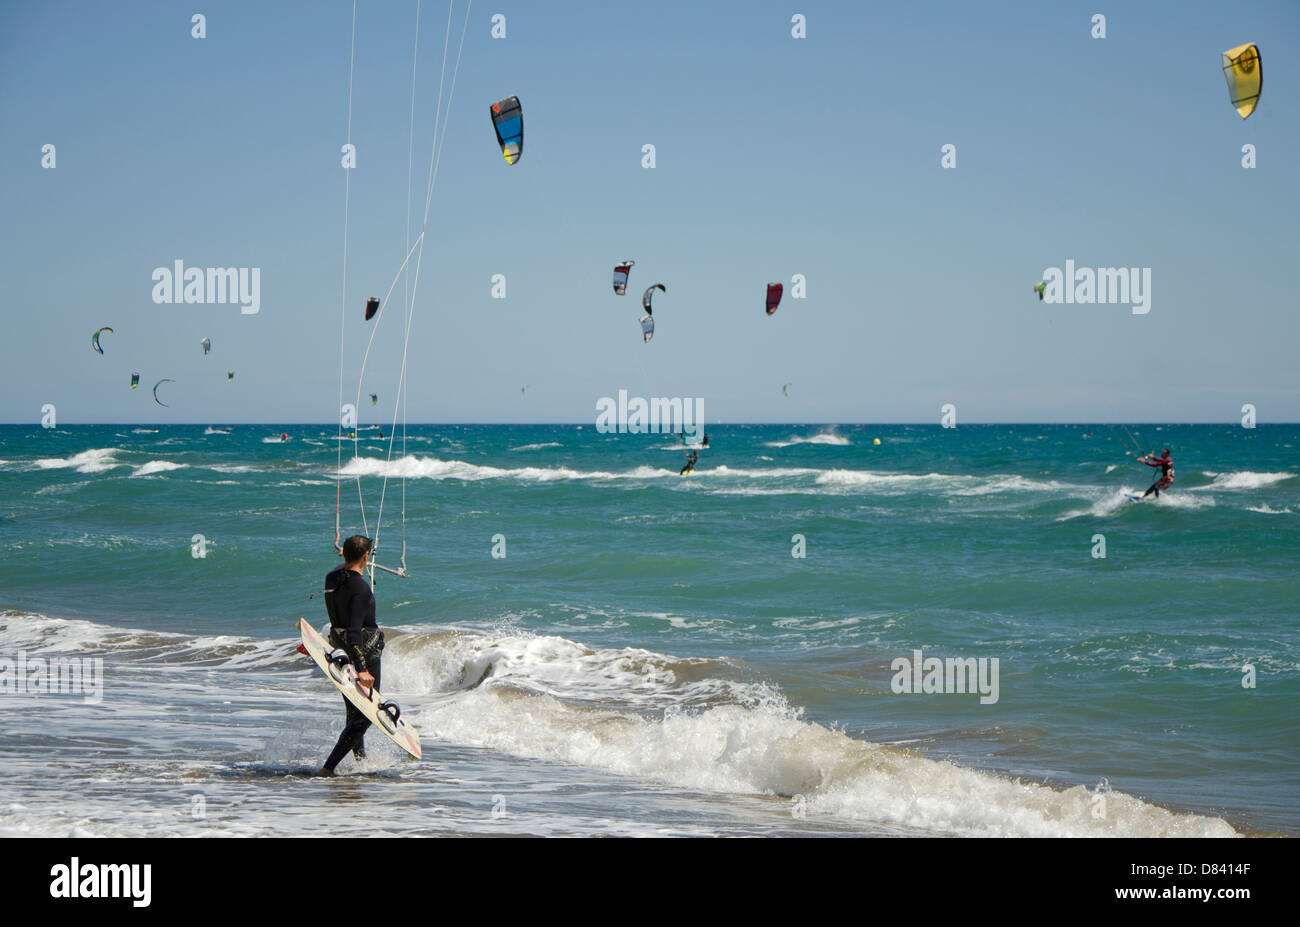 Kitesurfers at beach, Marbella, Spain. - Stock Image